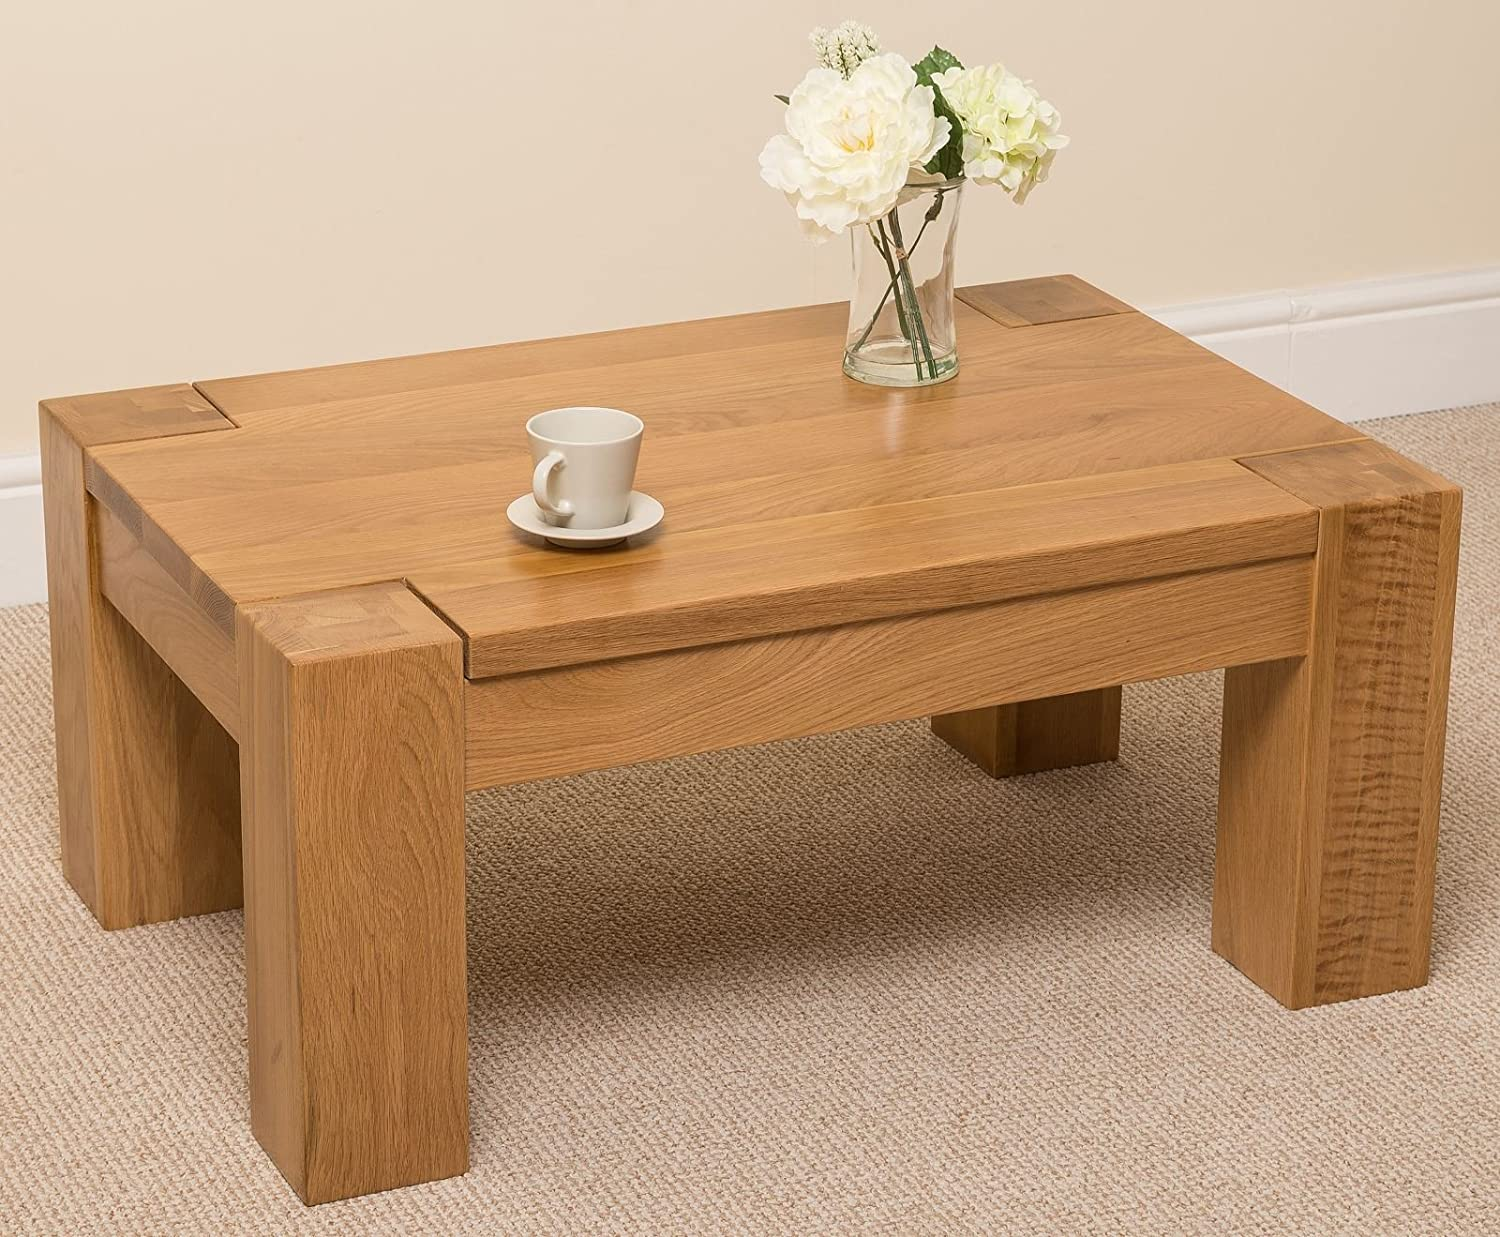 Kuba Chunky Solid Oak Wood Large Coffee Table Unit Wooden Living Room 90 X 40 60cm Amazoncouk Kitchen Home